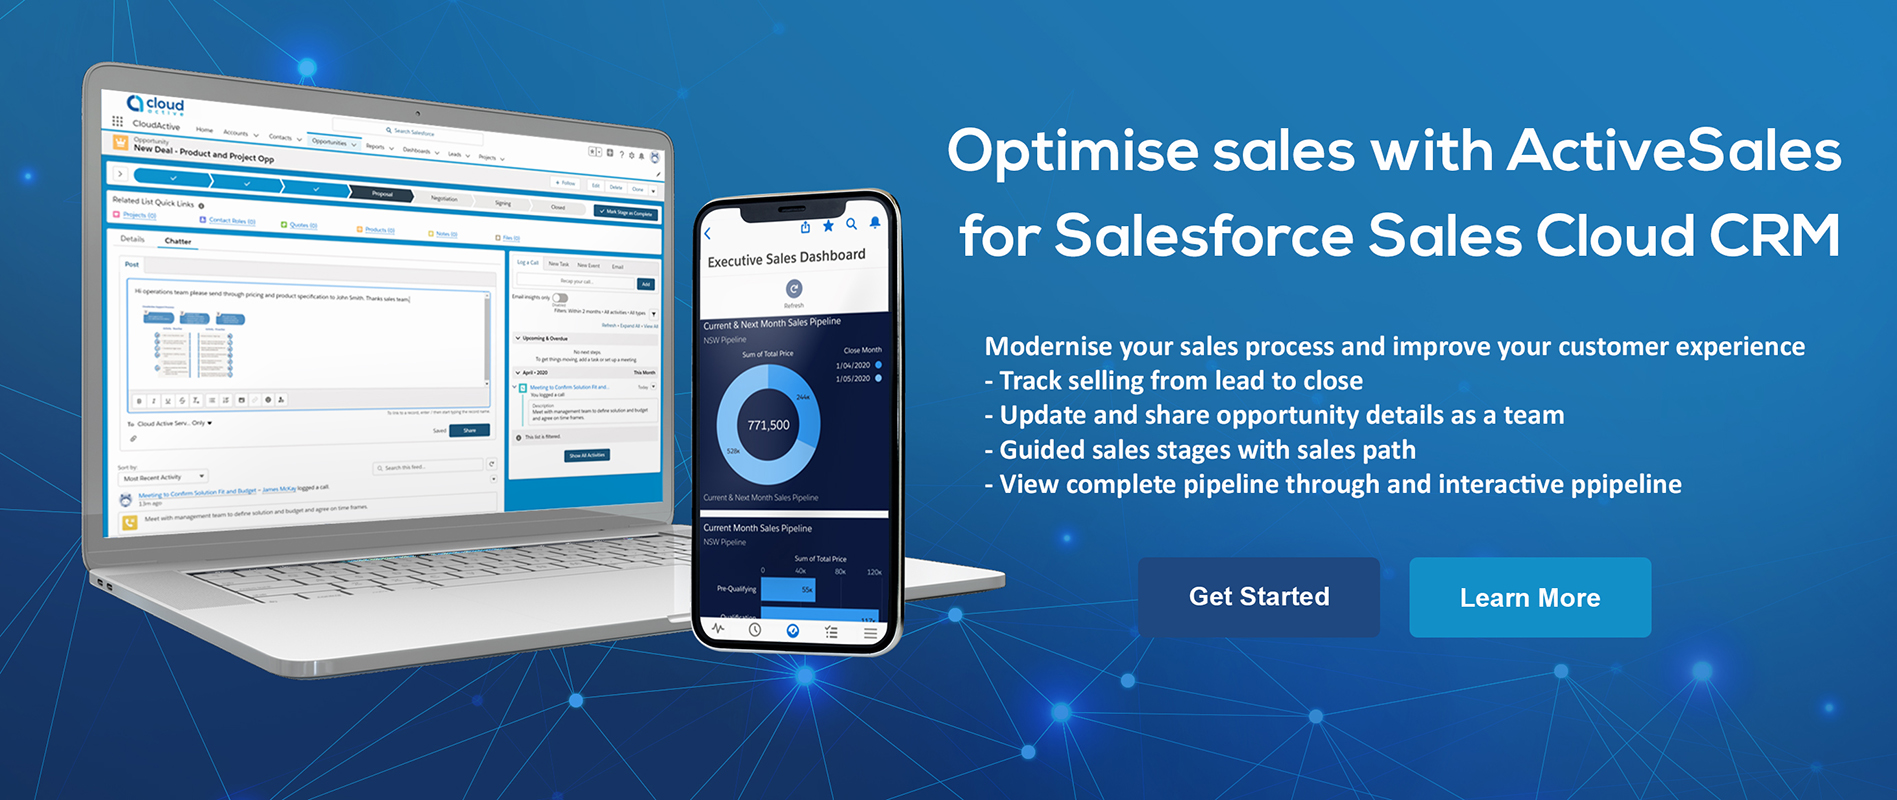 ActiveSales for Salesforce Sales Cloud CRM by CloudActive